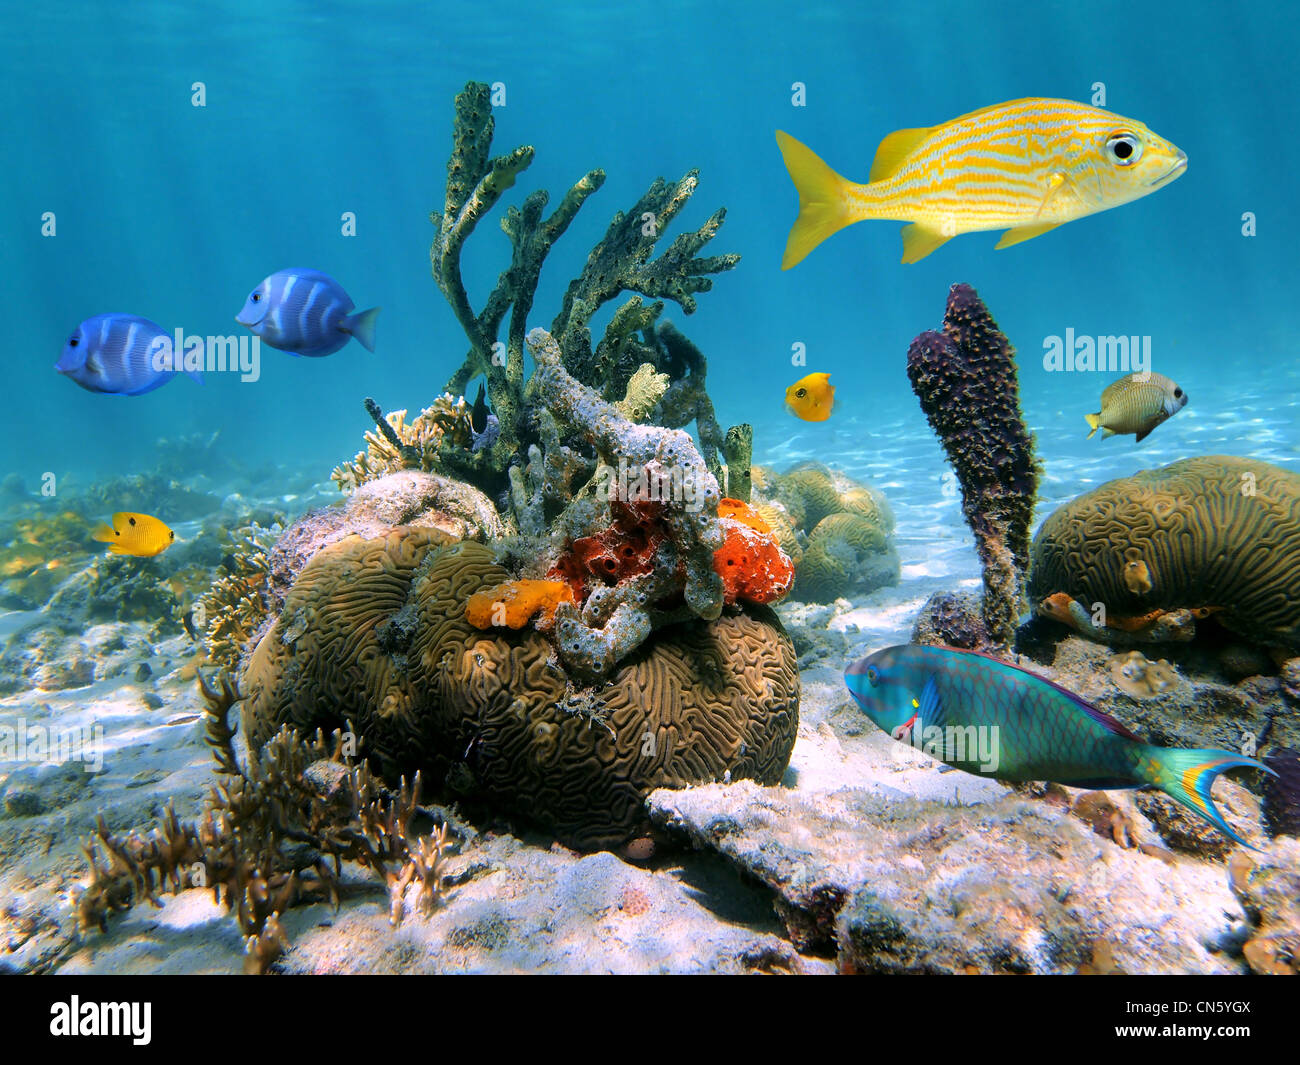 Colorful marine life underwater in the Caribbean sea with coral, tropical fish and sponges, Mexico - Stock Image